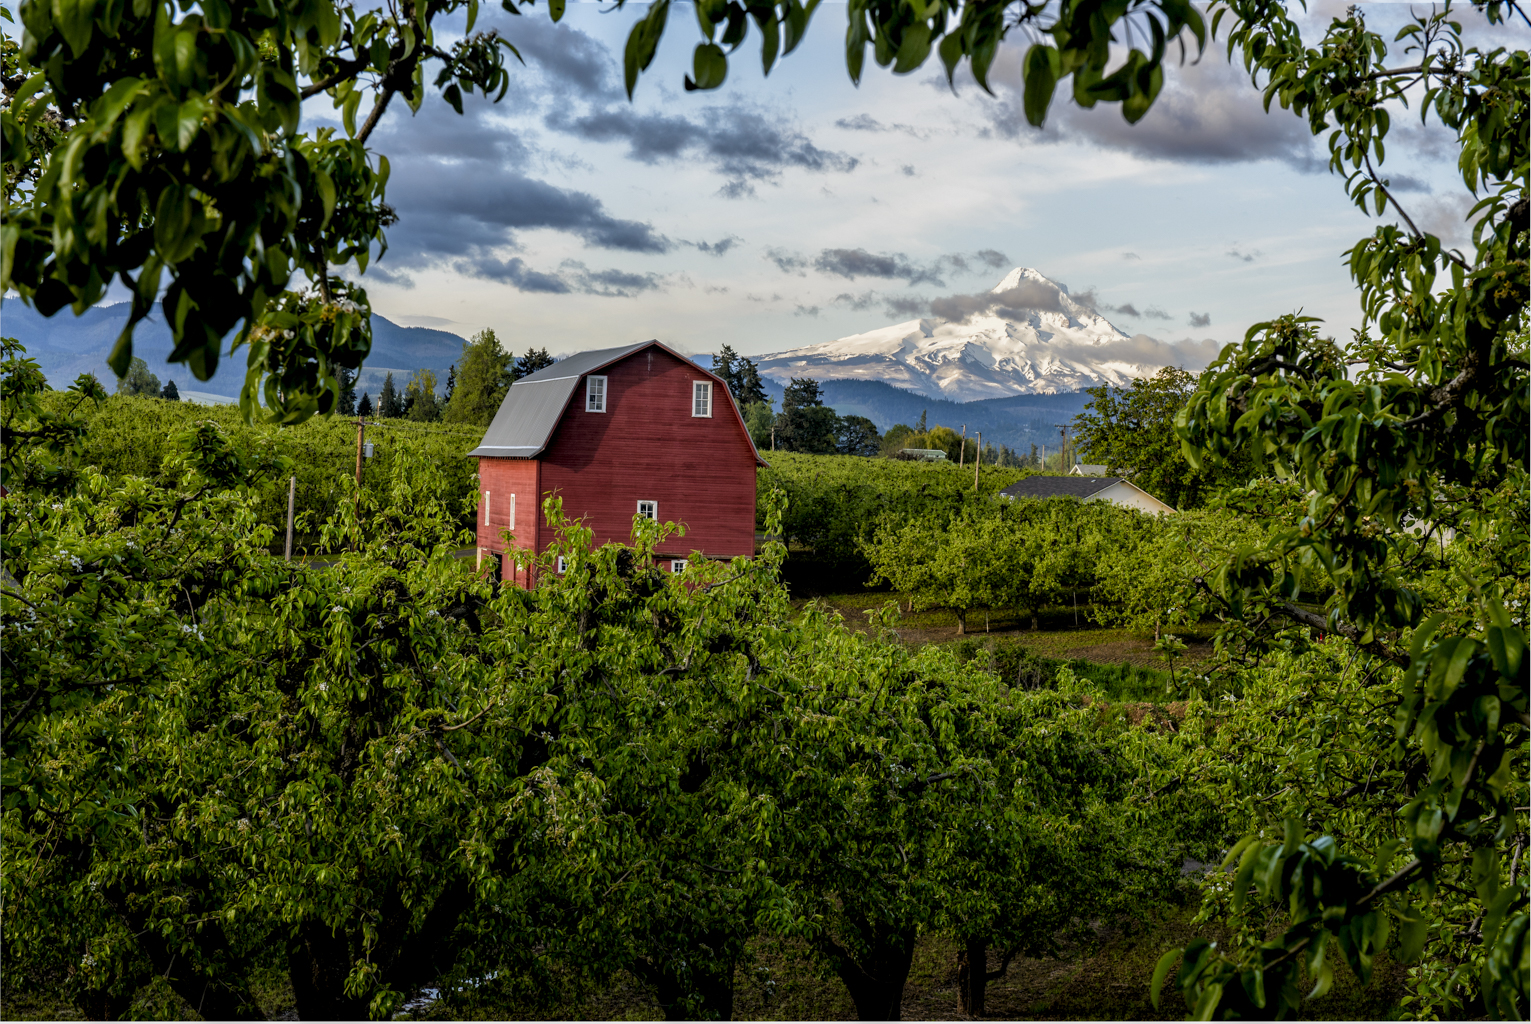 That Red Barn